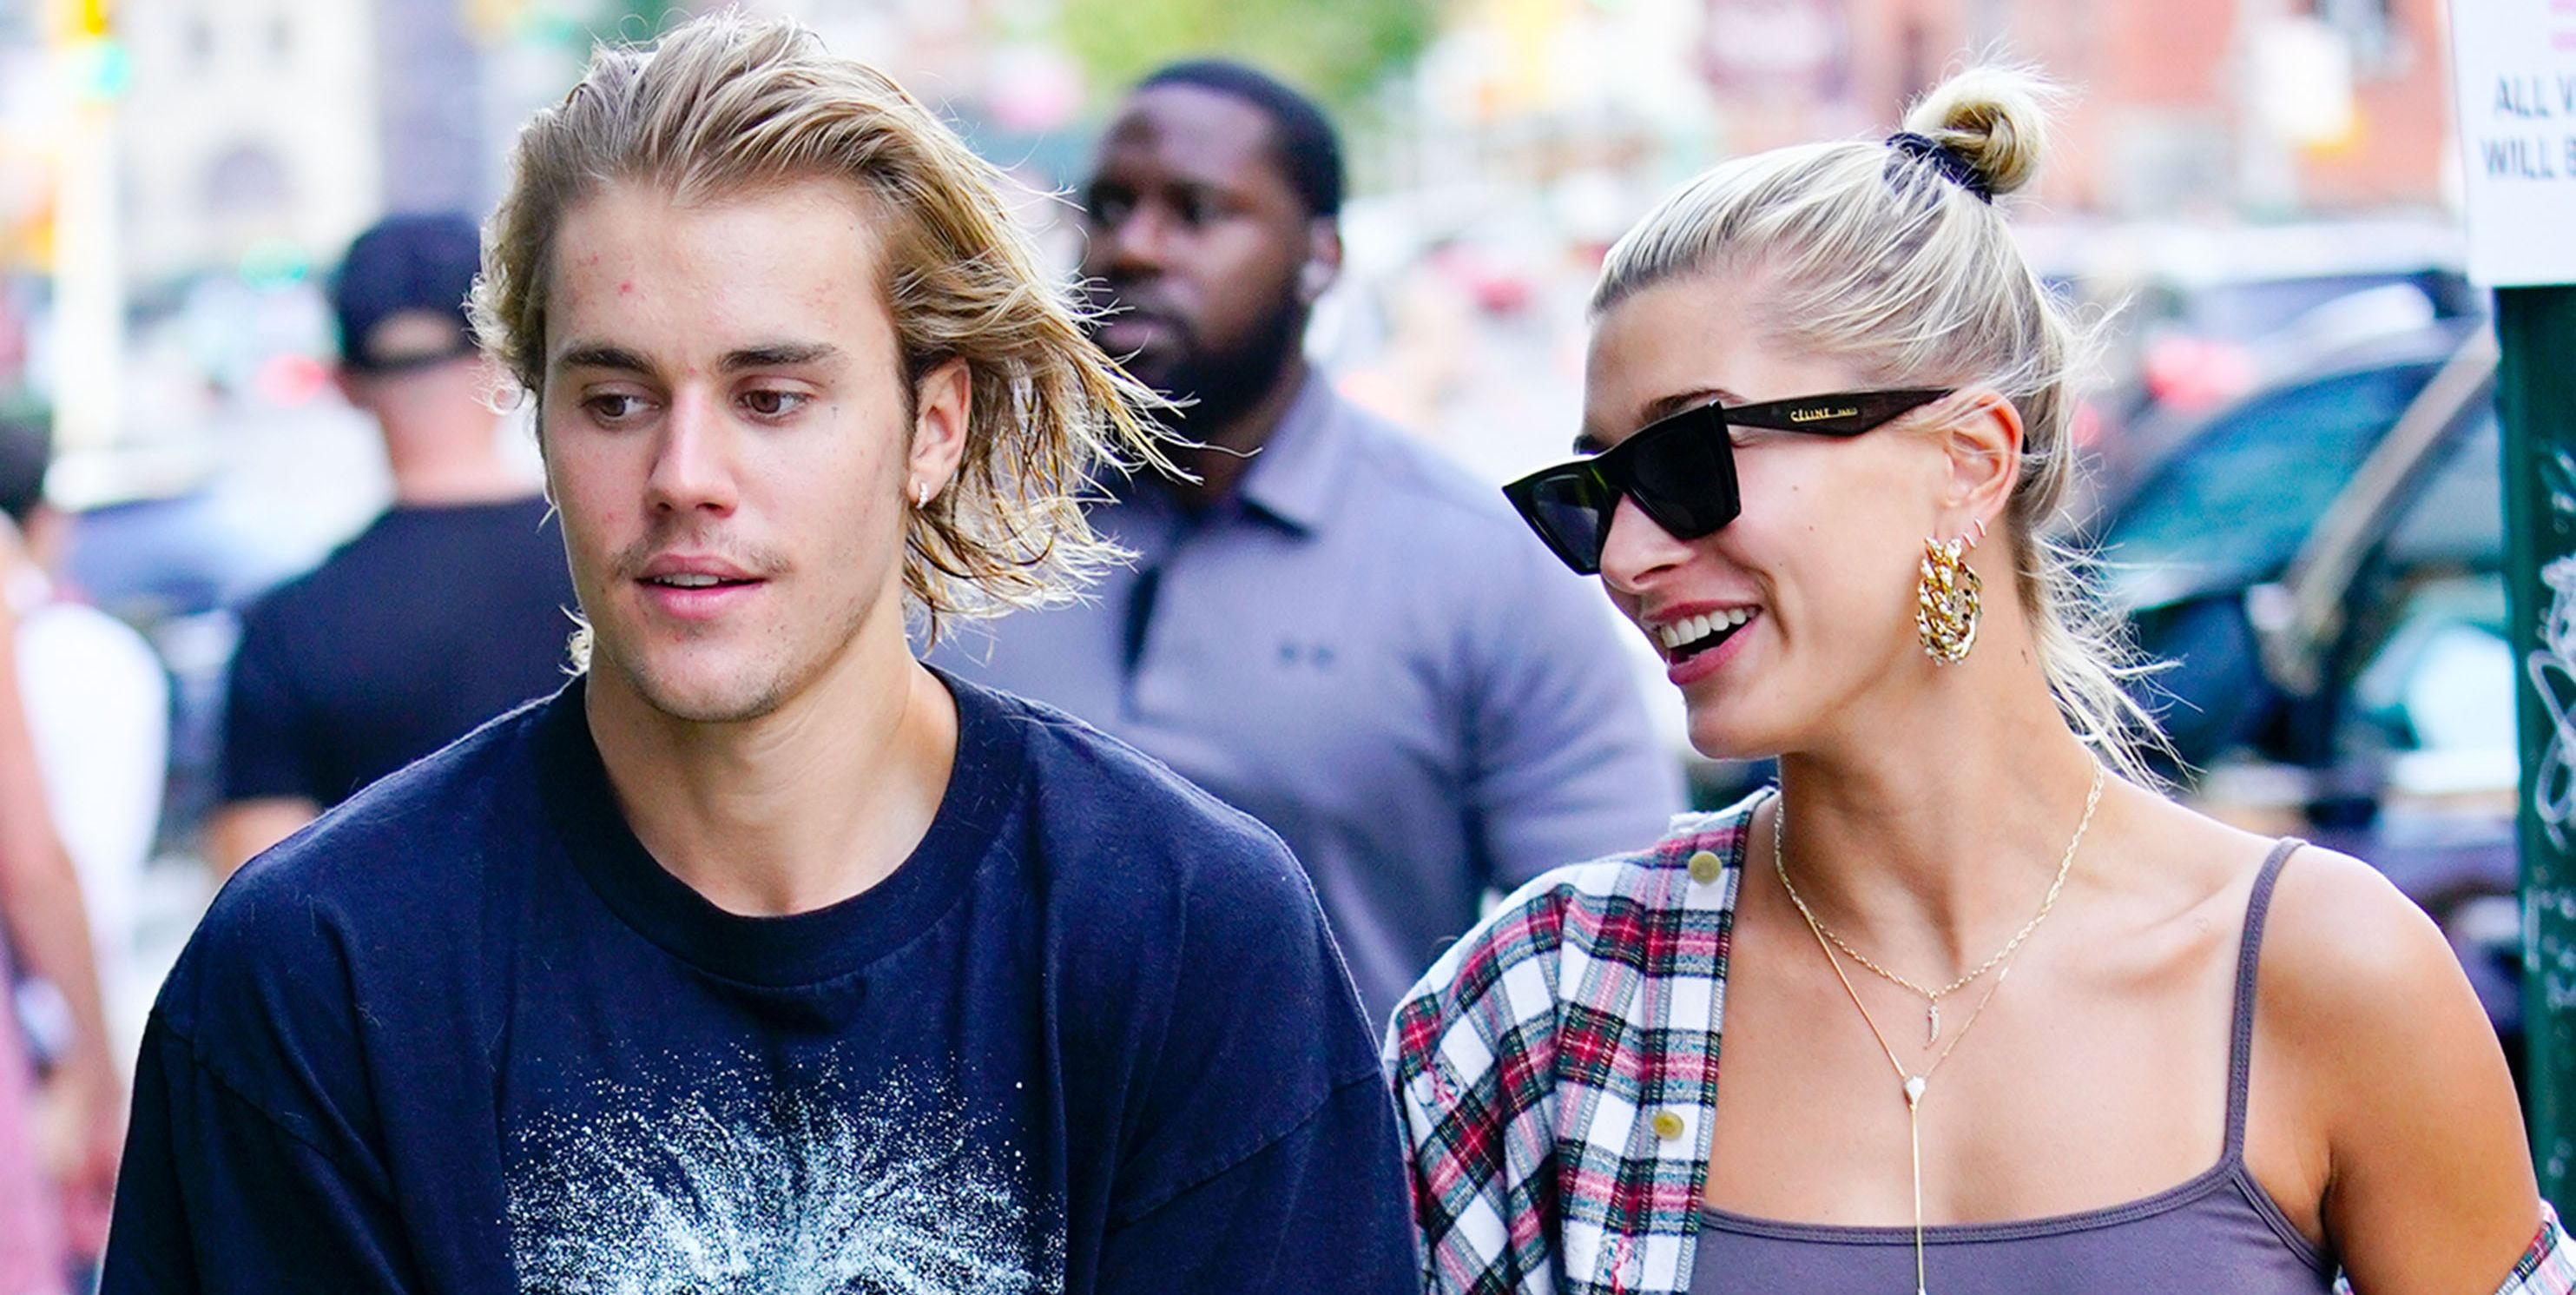 Hailey Baldwin's Uncle Just Revealed Her and Justin Bieber's Guest List